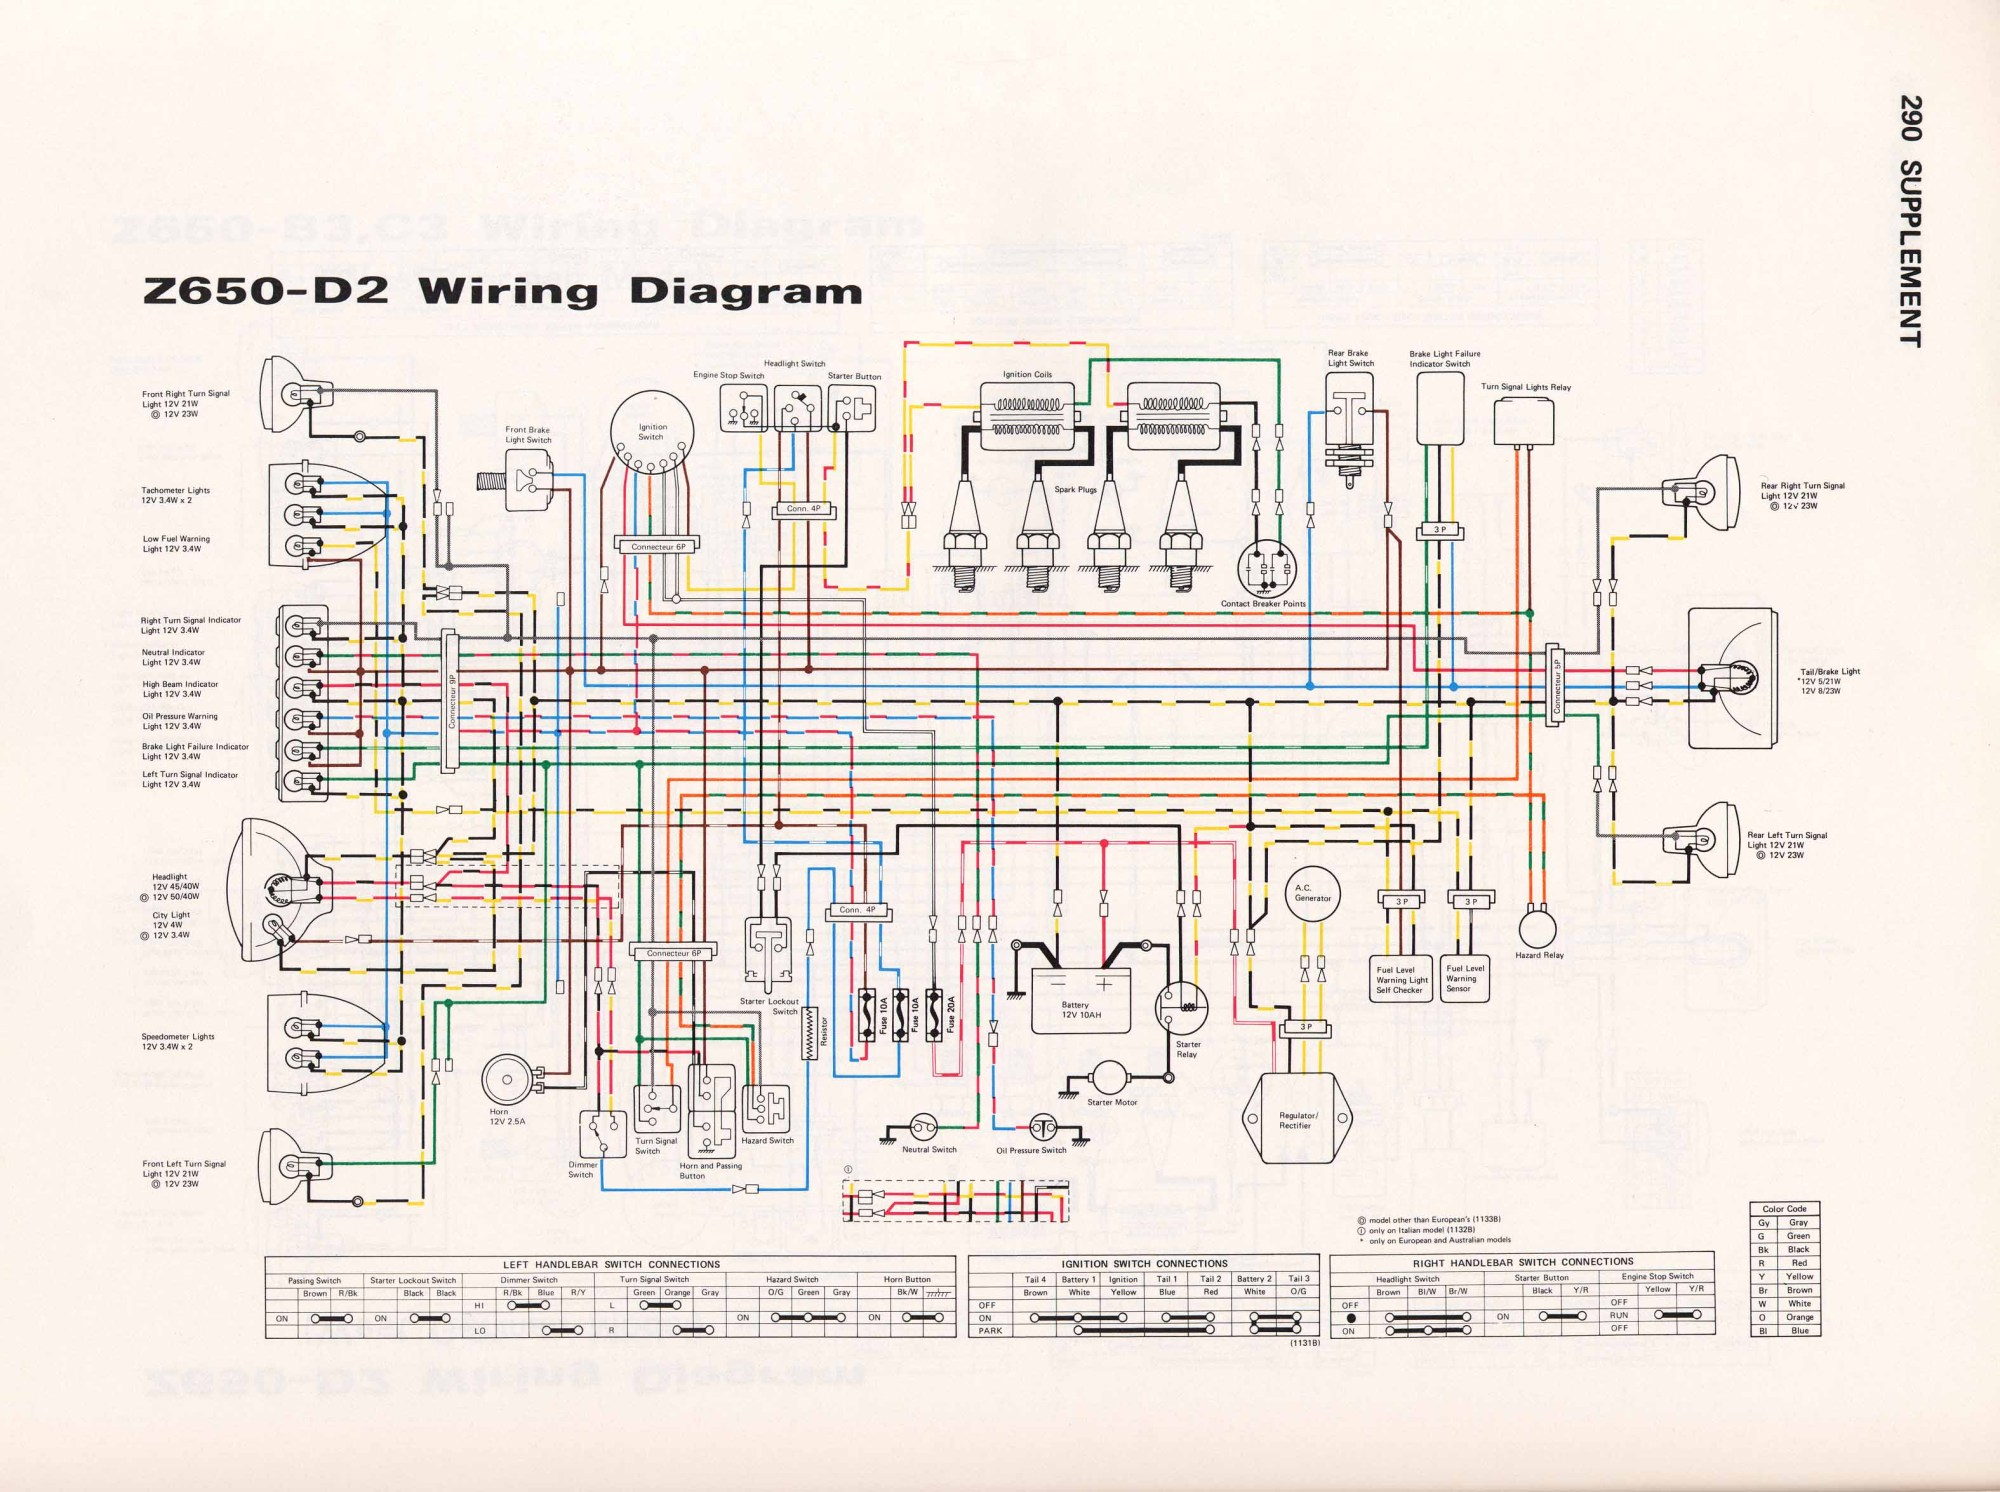 hight resolution of 1984 kawasaki 1100 wiring schematics wiring diagram datagpz 1100 wiring diagram wiring diagram sullair wiring schematics